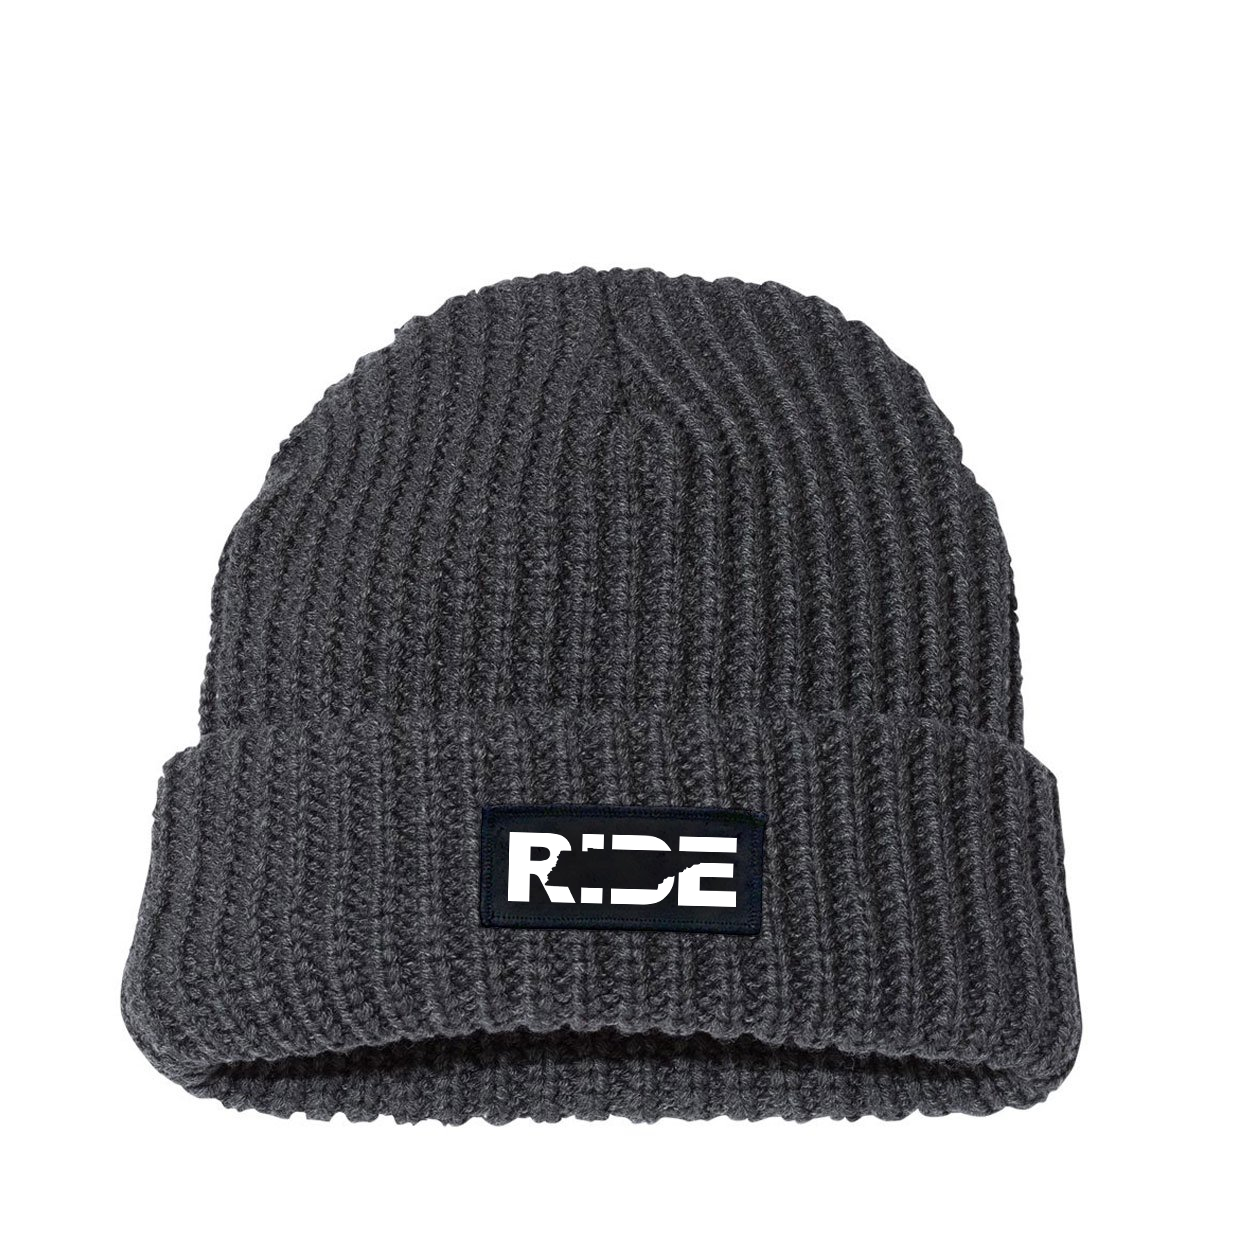 Ride Tennessee Night Out Woven Patch Roll Up Jumbo Chunky Knit Beanie Charcoal (White Logo)